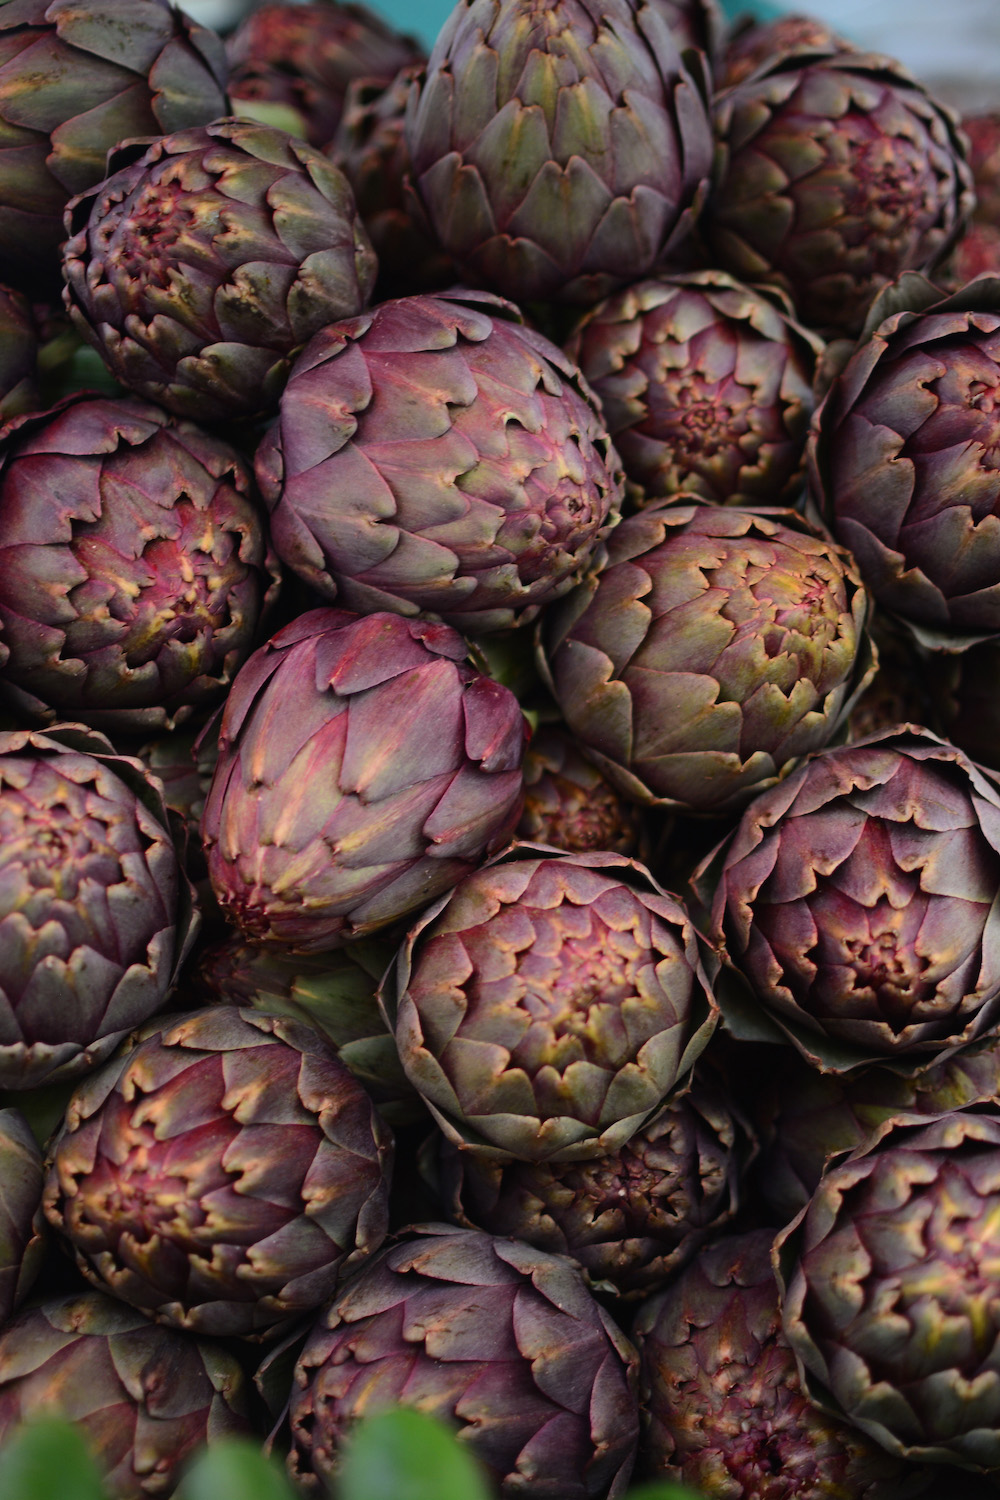 Artichokes at Carmel Market in Jaffa